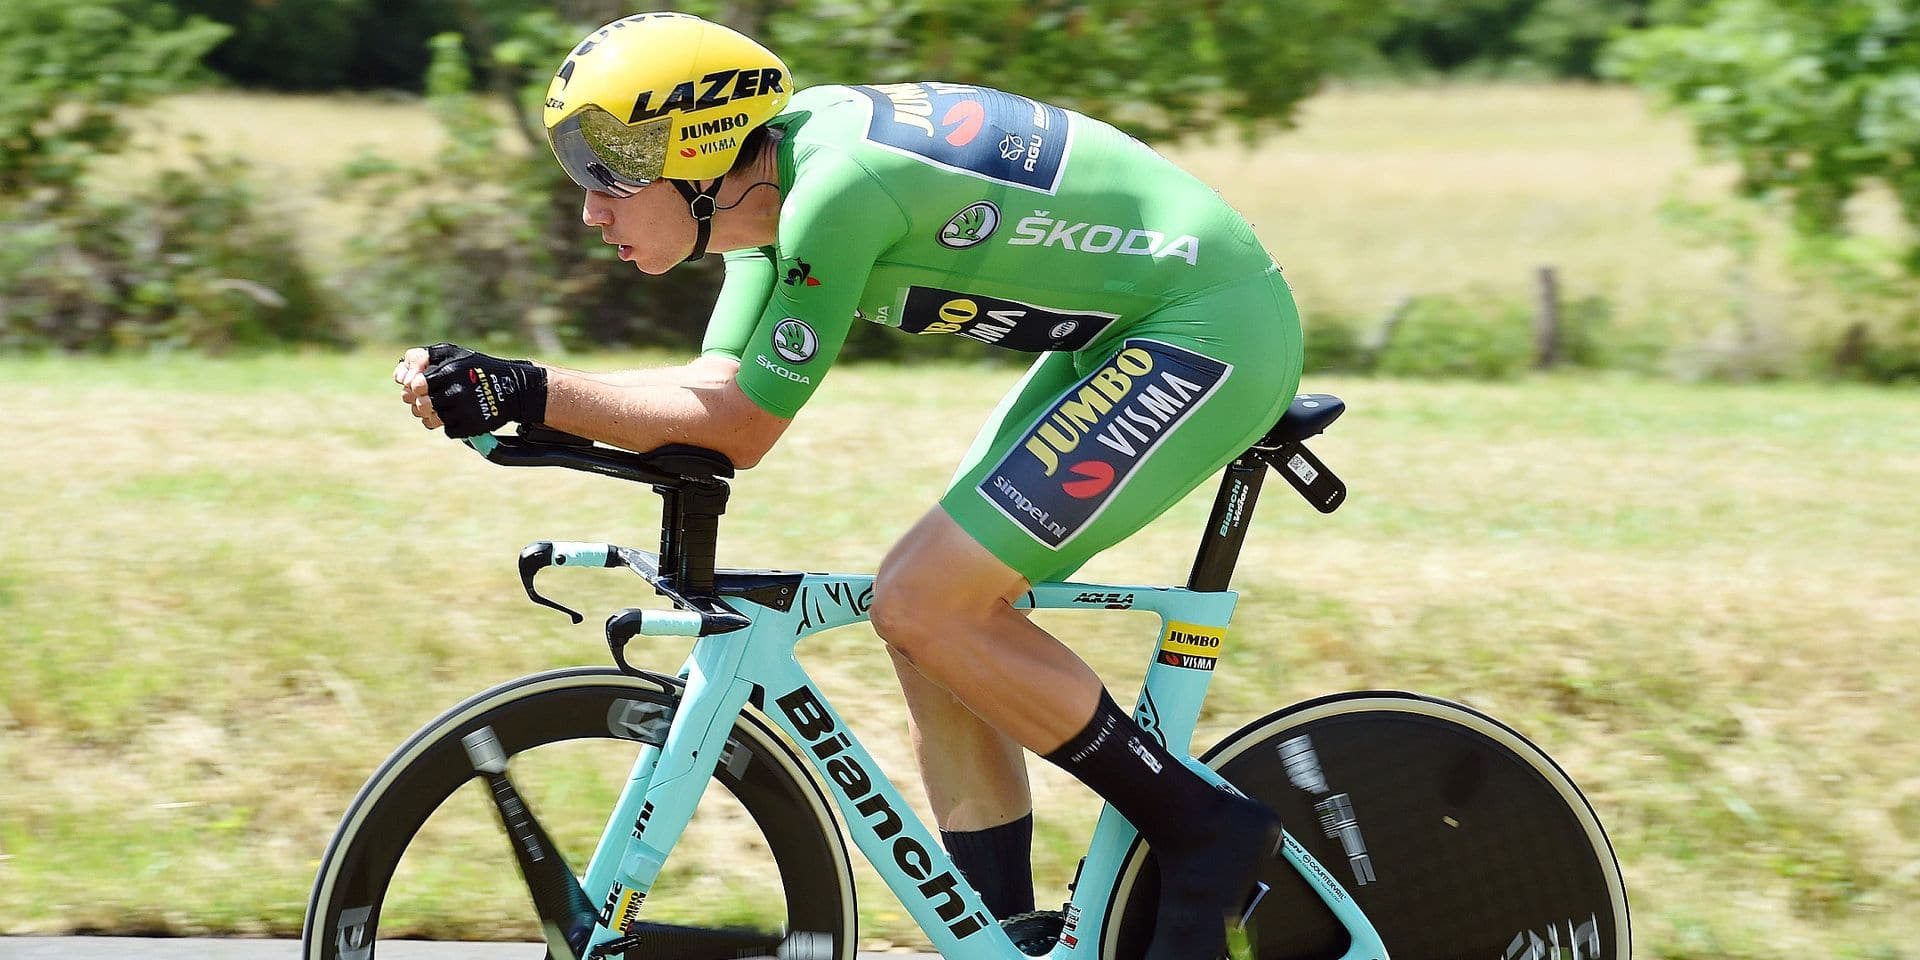 Wout Van Aert of Jumbo - Visma during the Stage 4 of Criterium du Dauphine from Roanne to Roanne on June 12th, 2019. Photo : Sirotti / Icon Sport